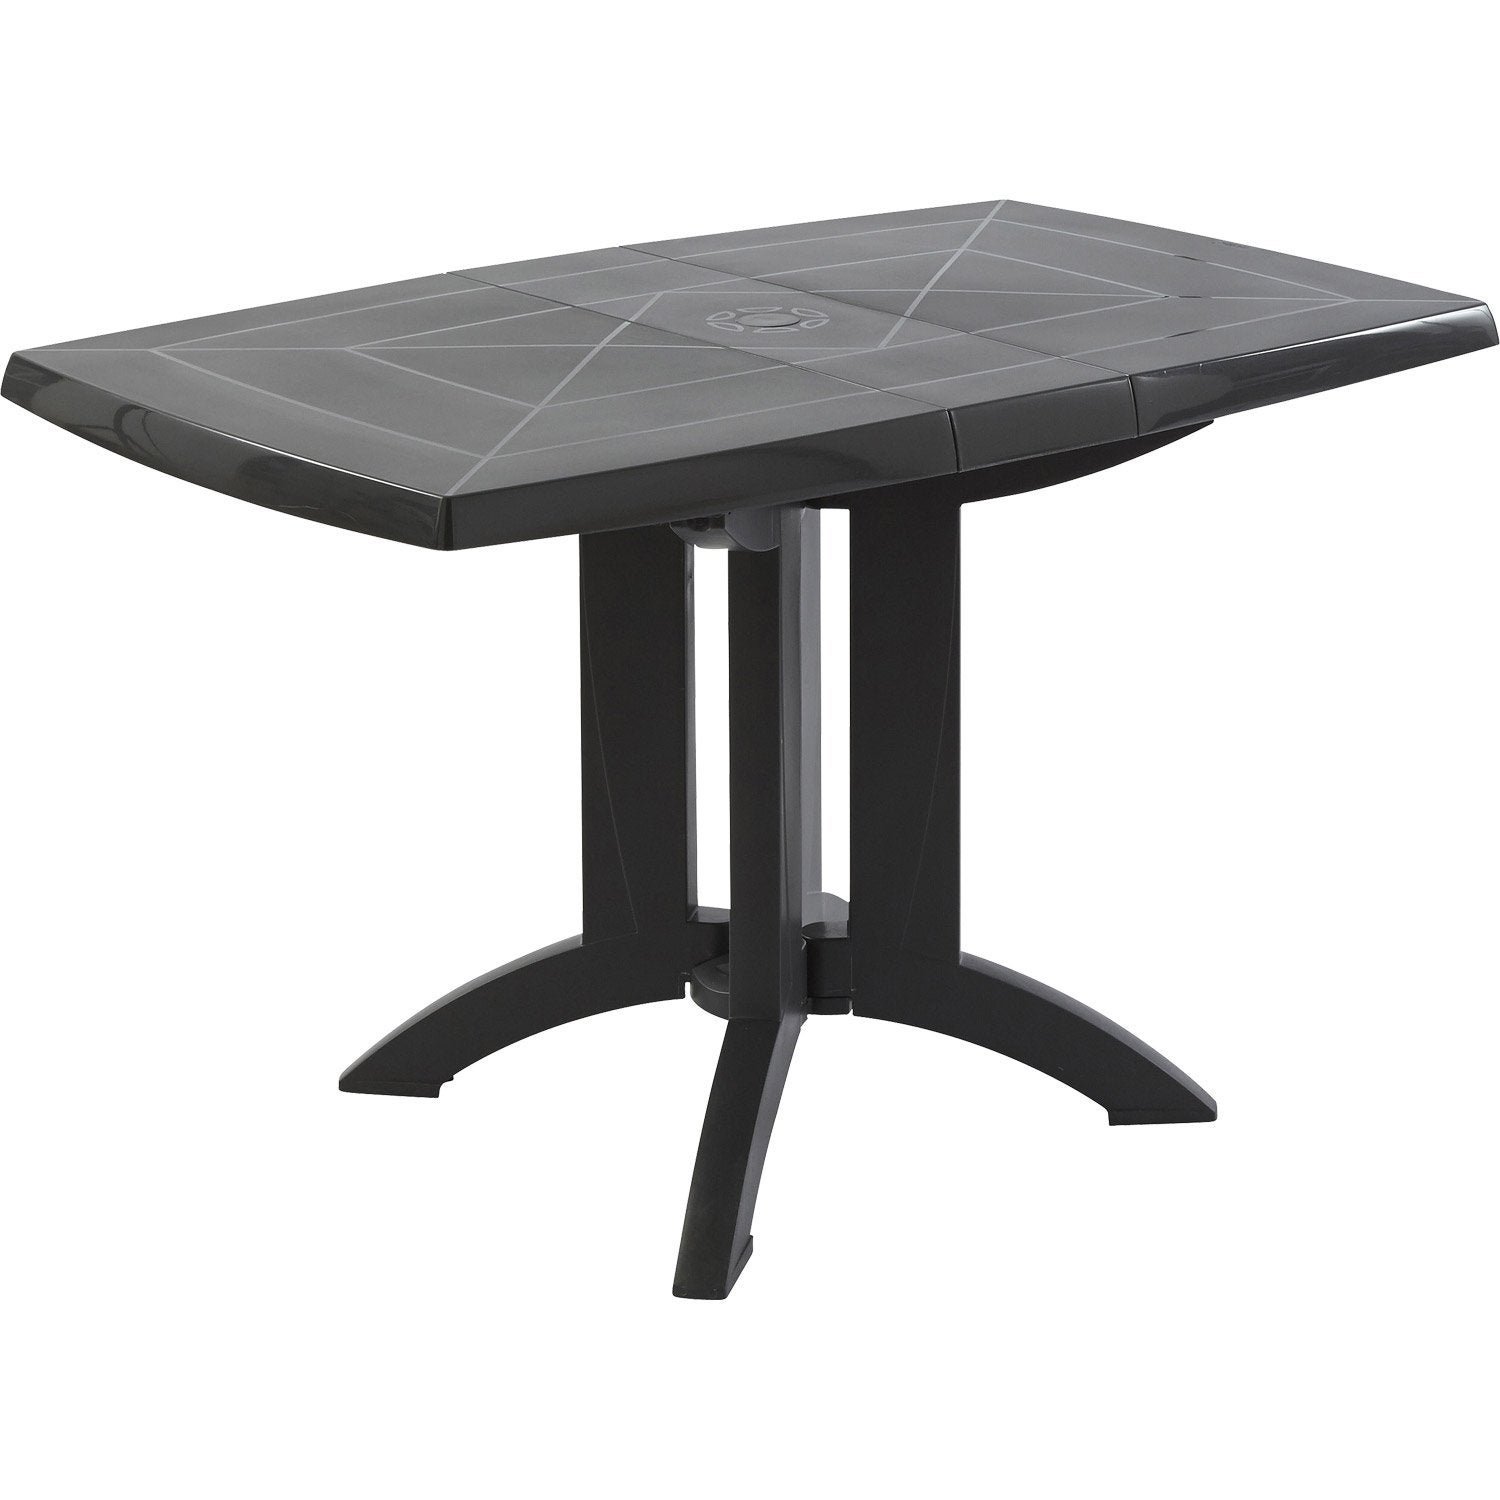 Table de jardin grosfillex v ga rectangulaire anthracite 4 for Leroy merlin table jardin